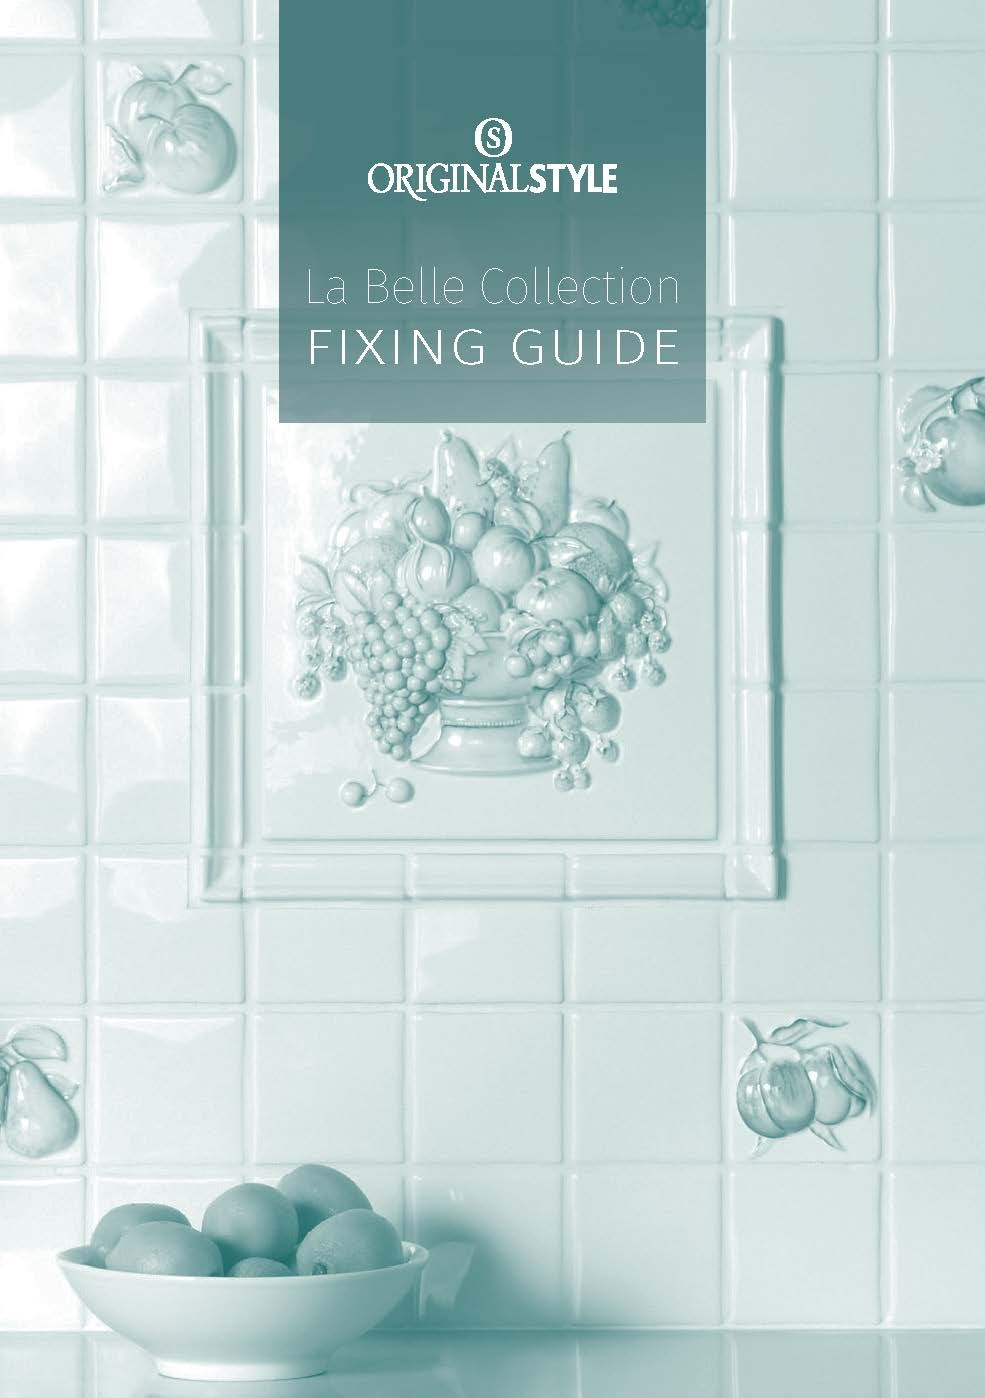 La Belle Collection Fixing Guide preview image